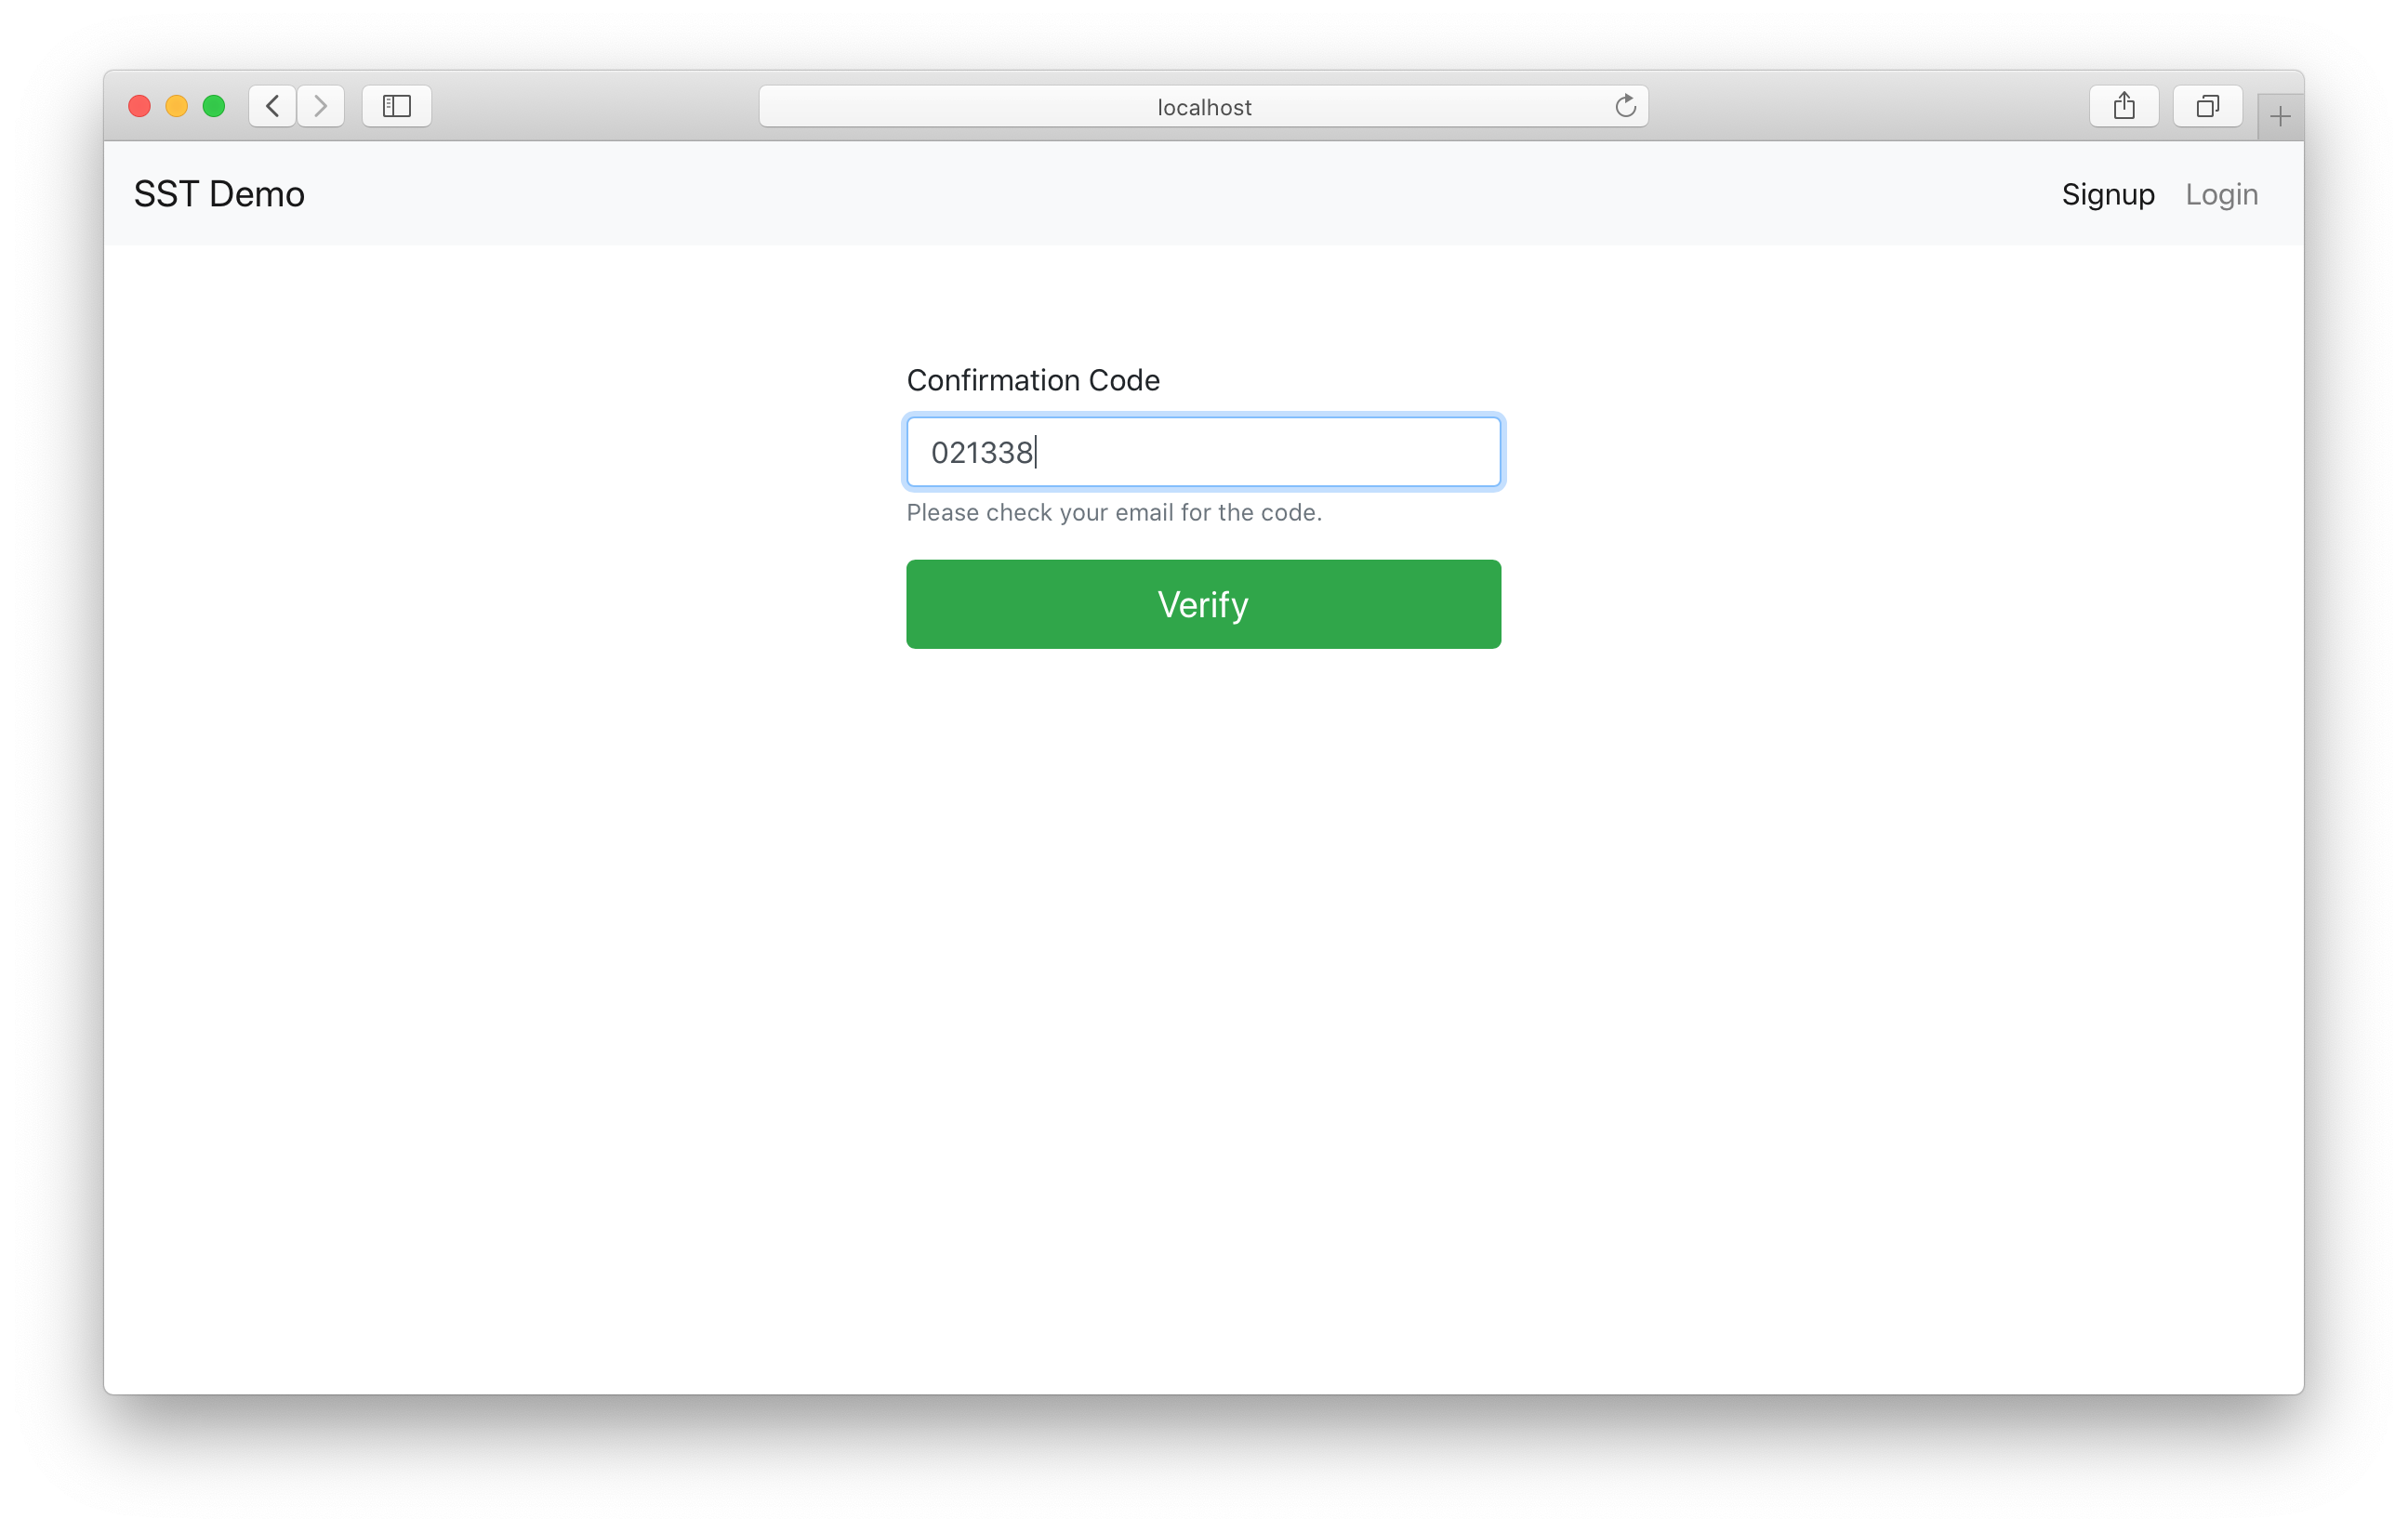 Sign up confirm Cognito in React.js app